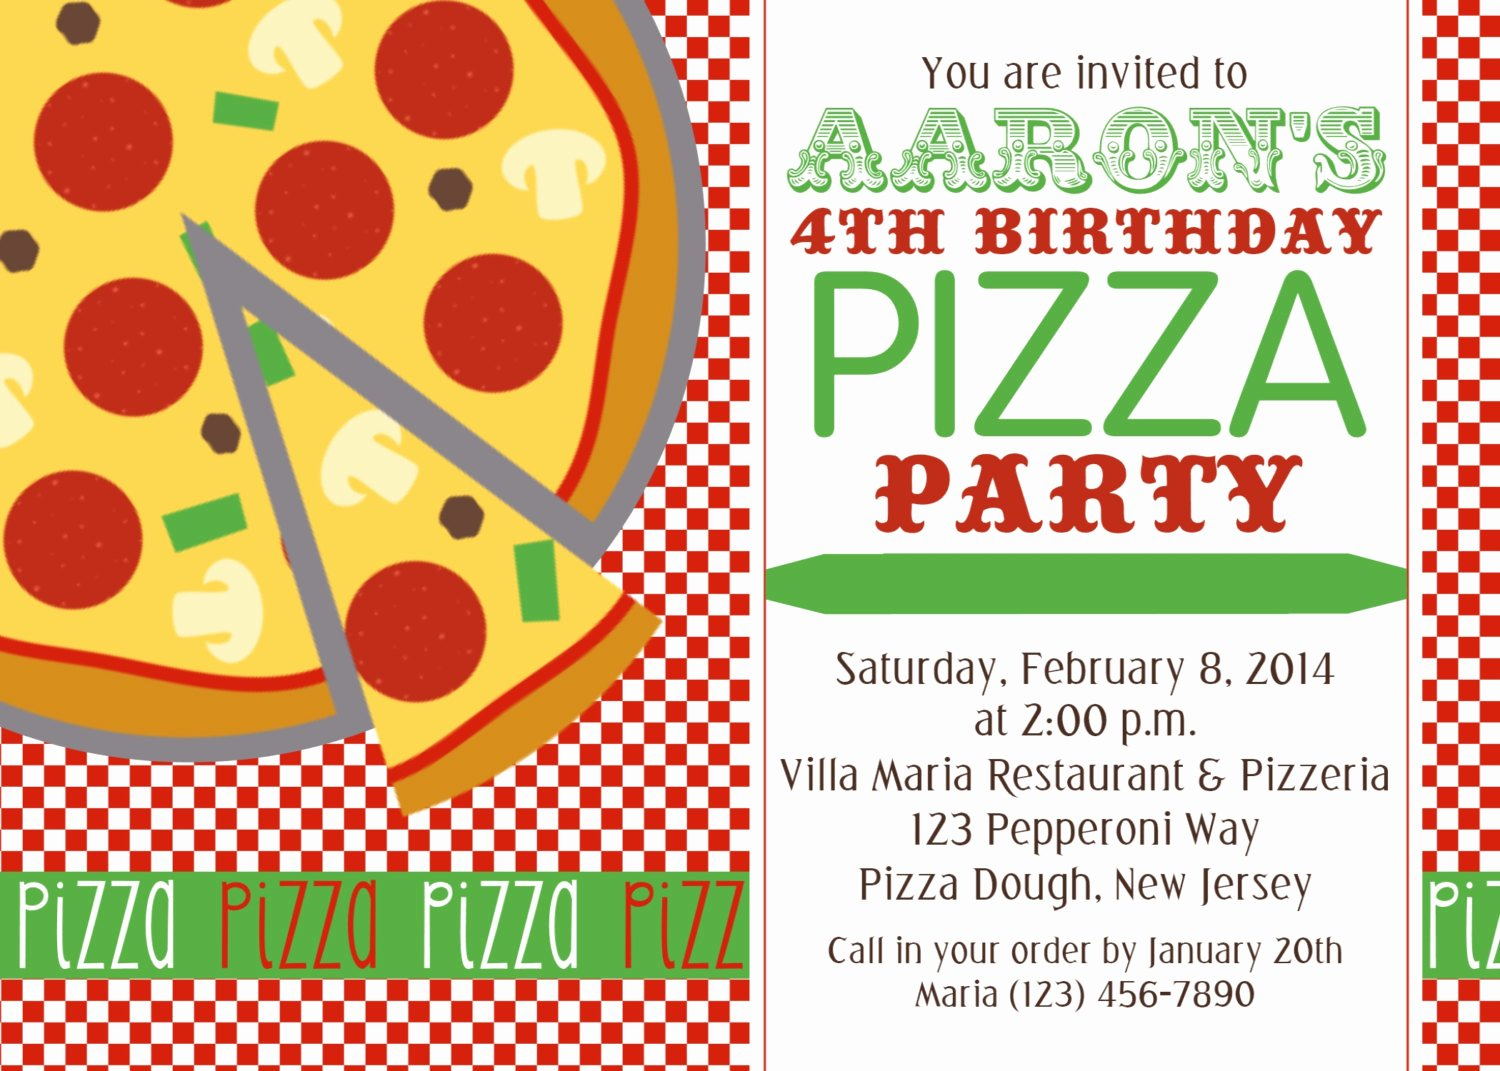 Pizza Party Invitation Template New Chandeliers & Pendant Lights